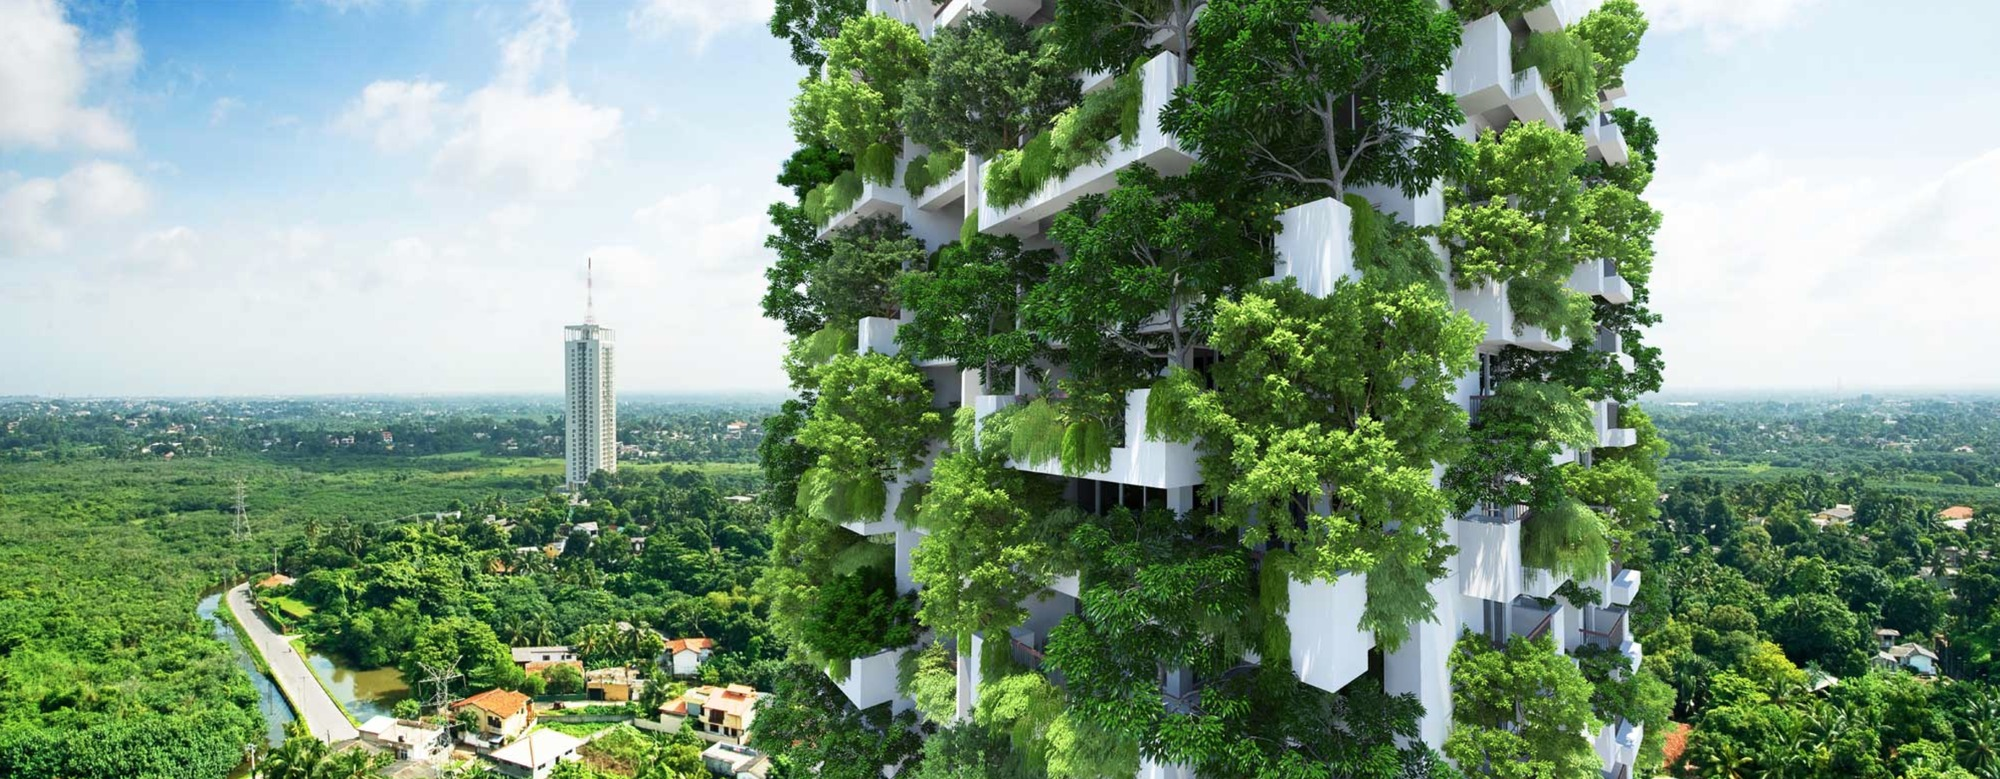 Vertical Garden Installations Archives Living Walls And